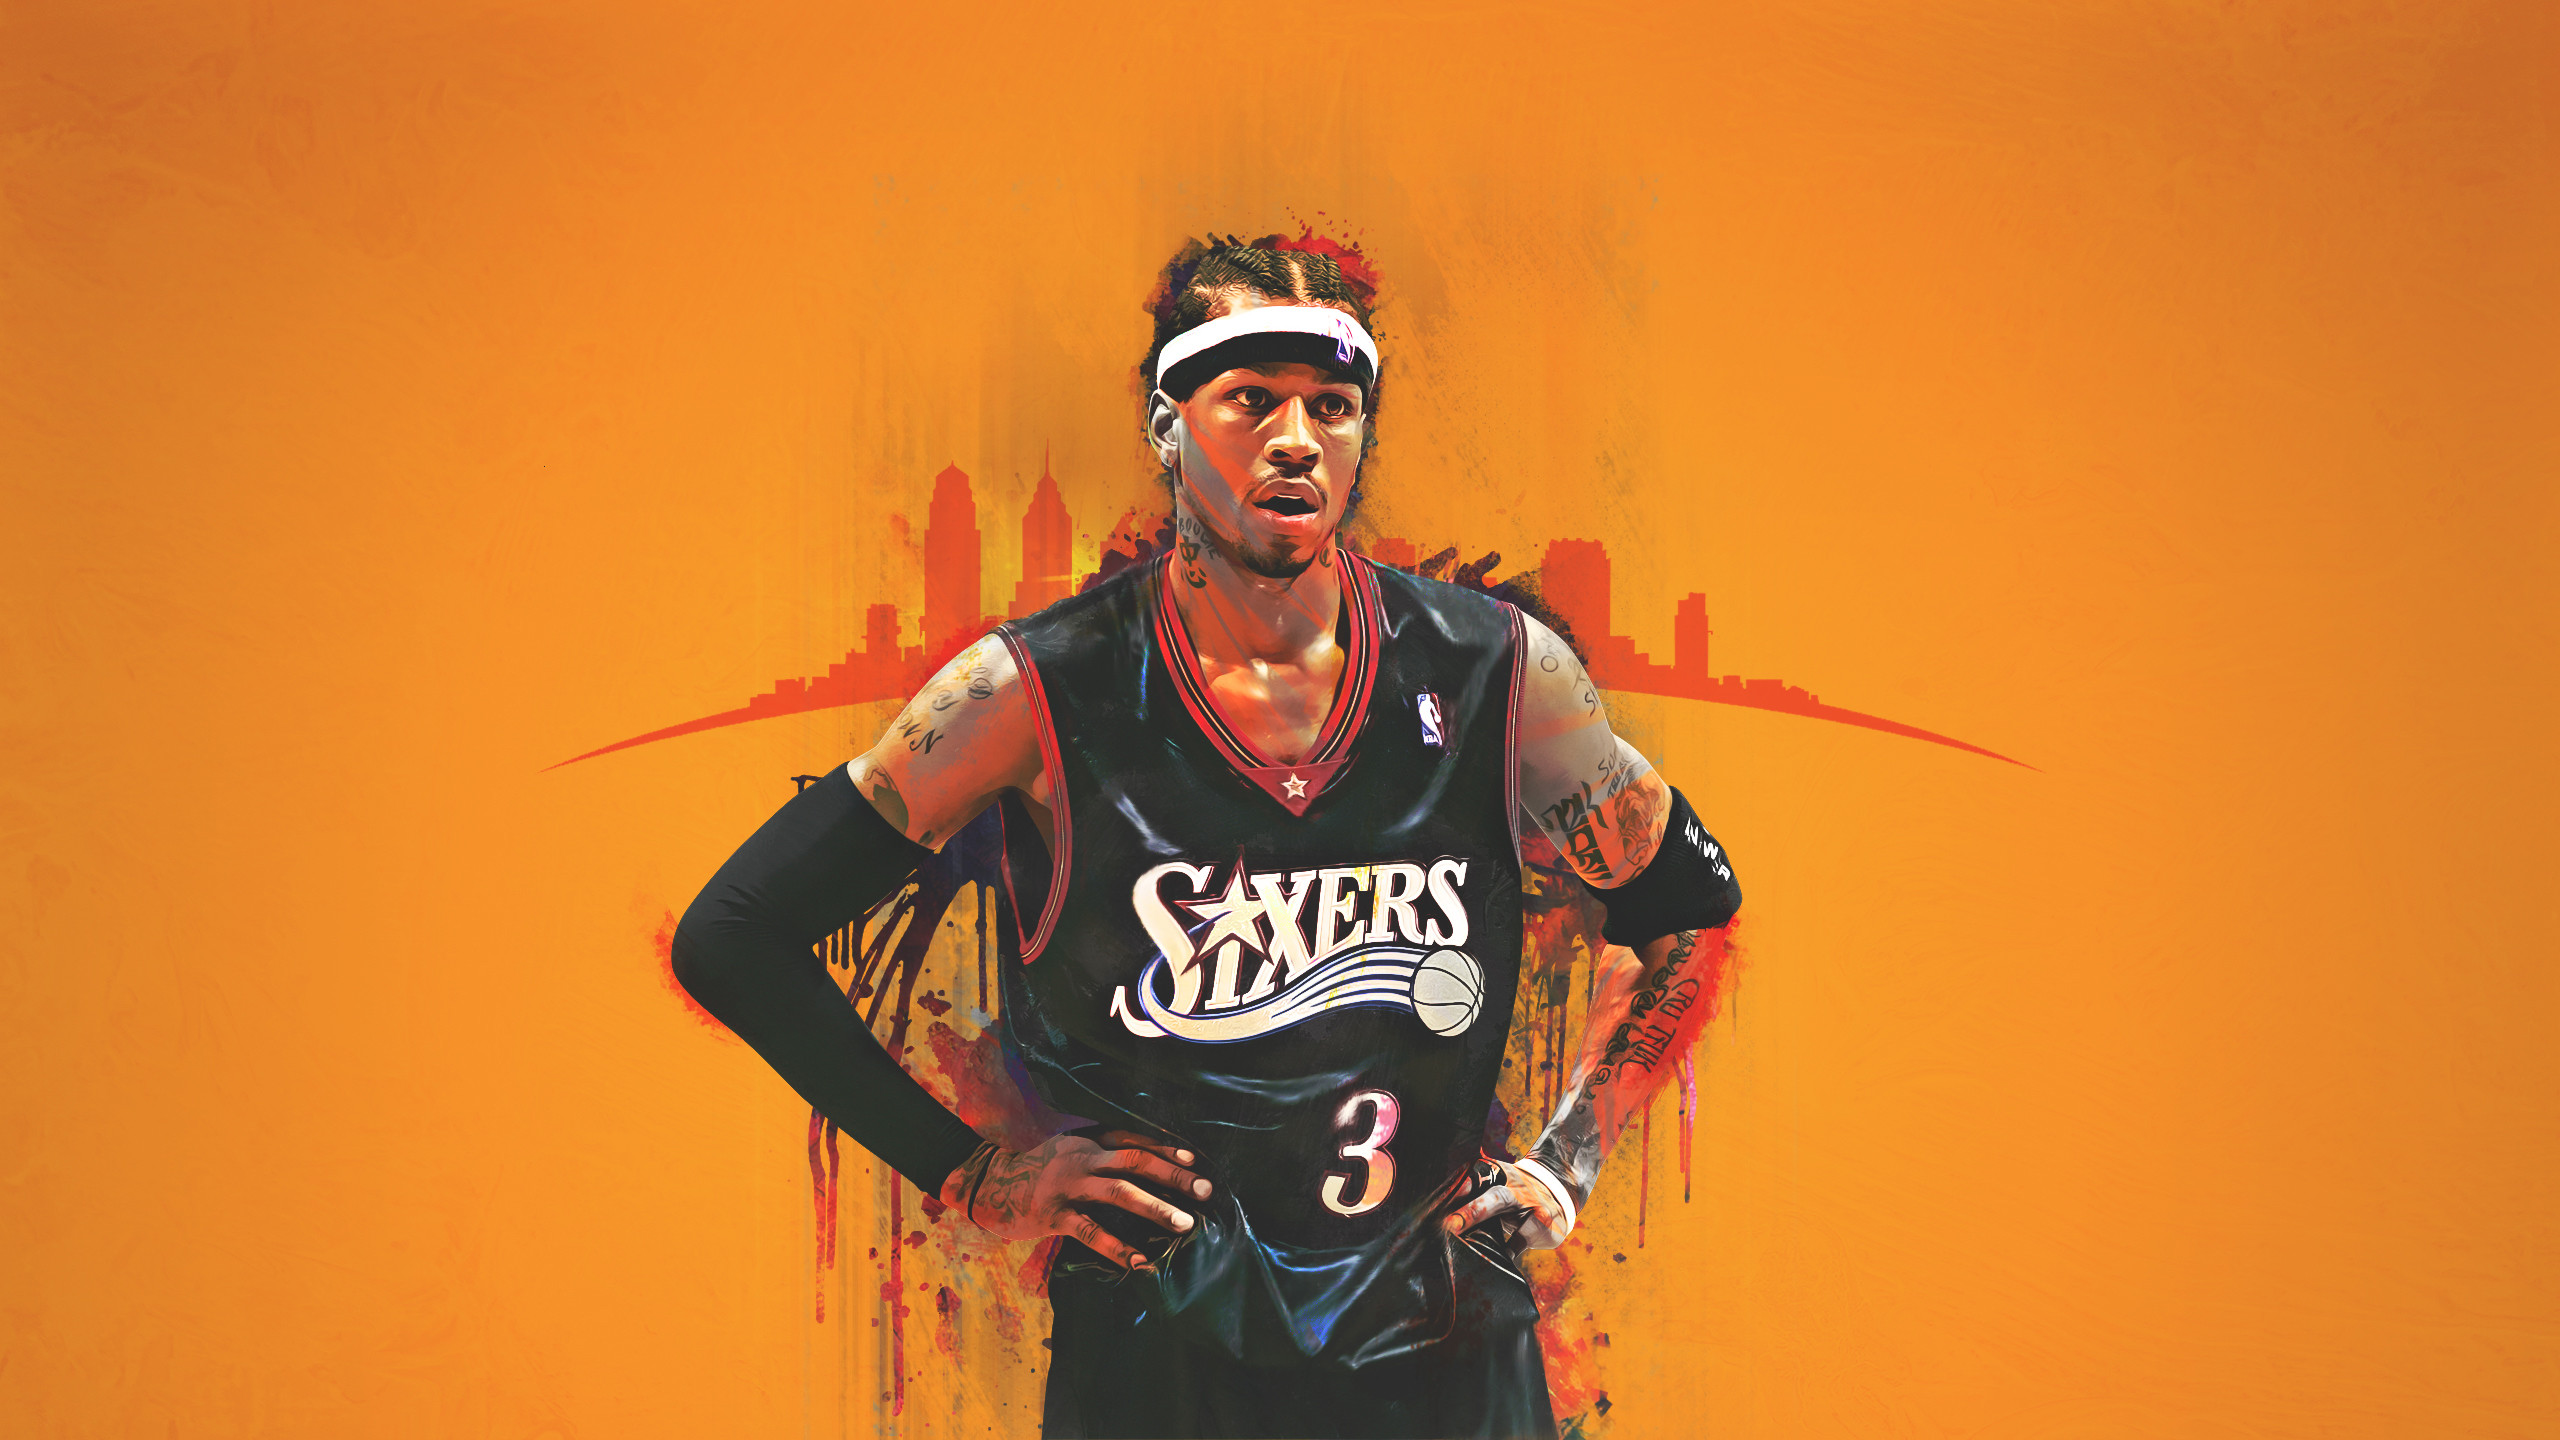 Free-Download-Allen-Iverson-Backgrounds